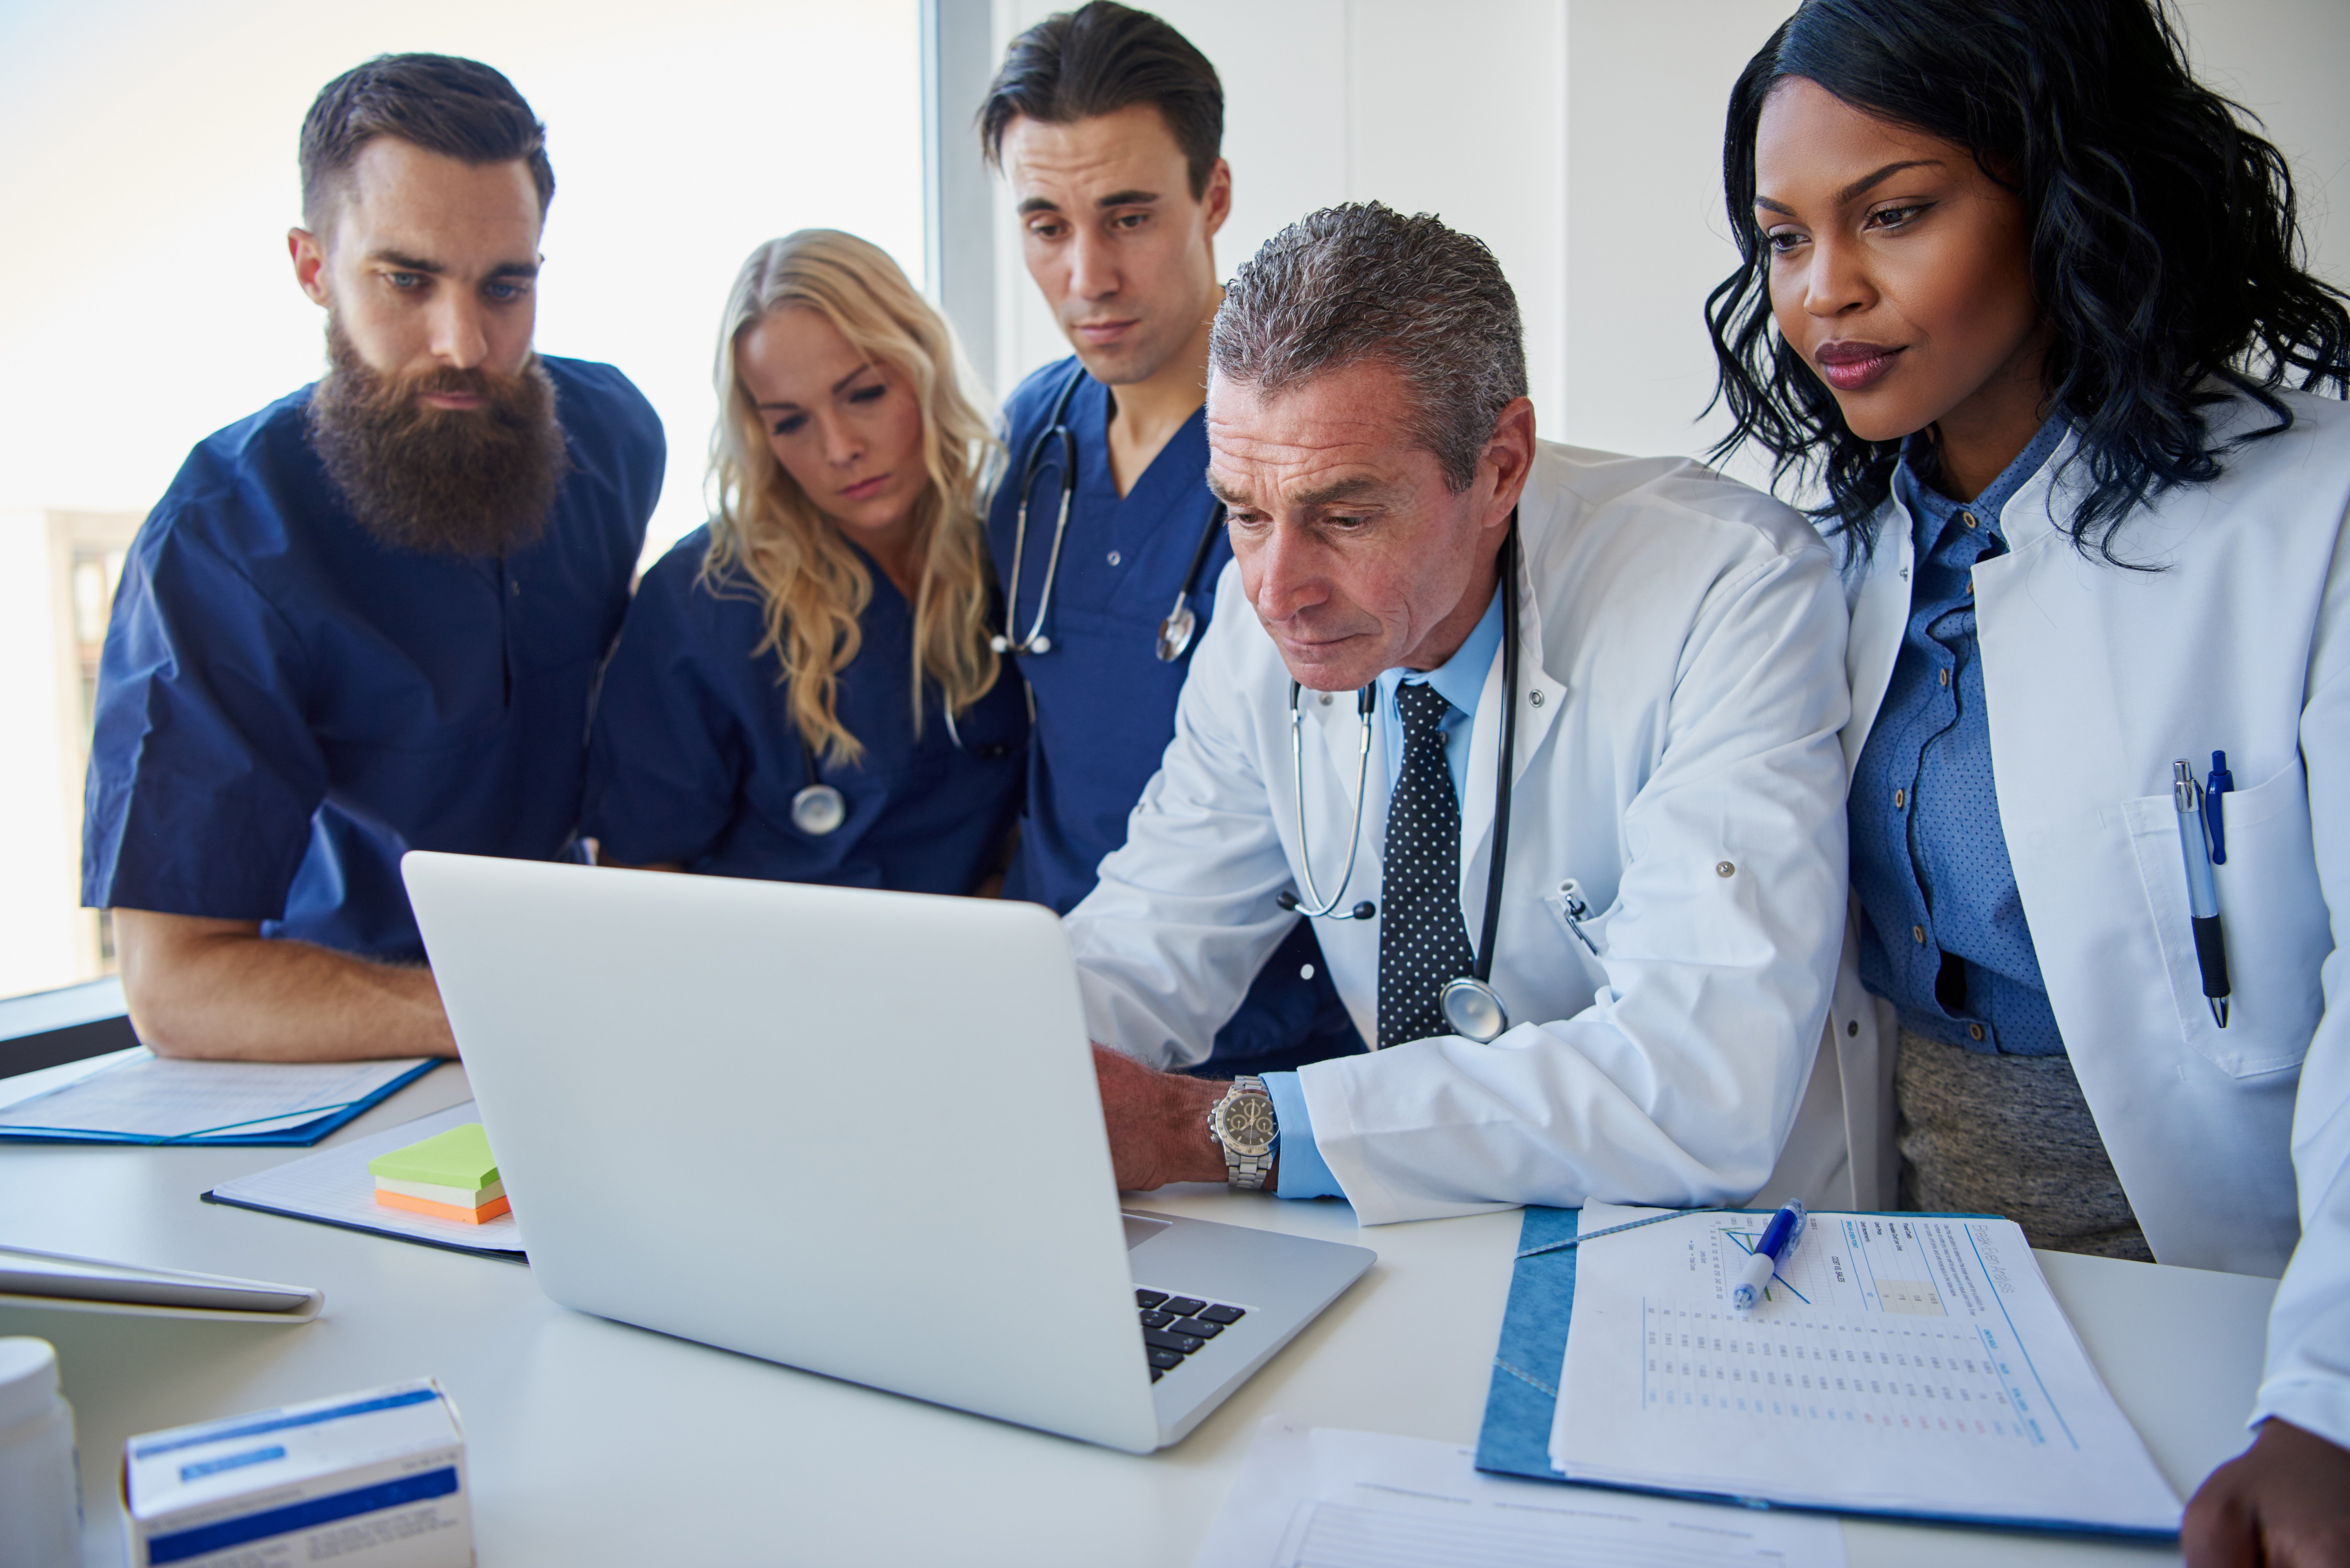 the-medicine-workers-standing-and-browsing-laptop-MR38KJZ.jpg